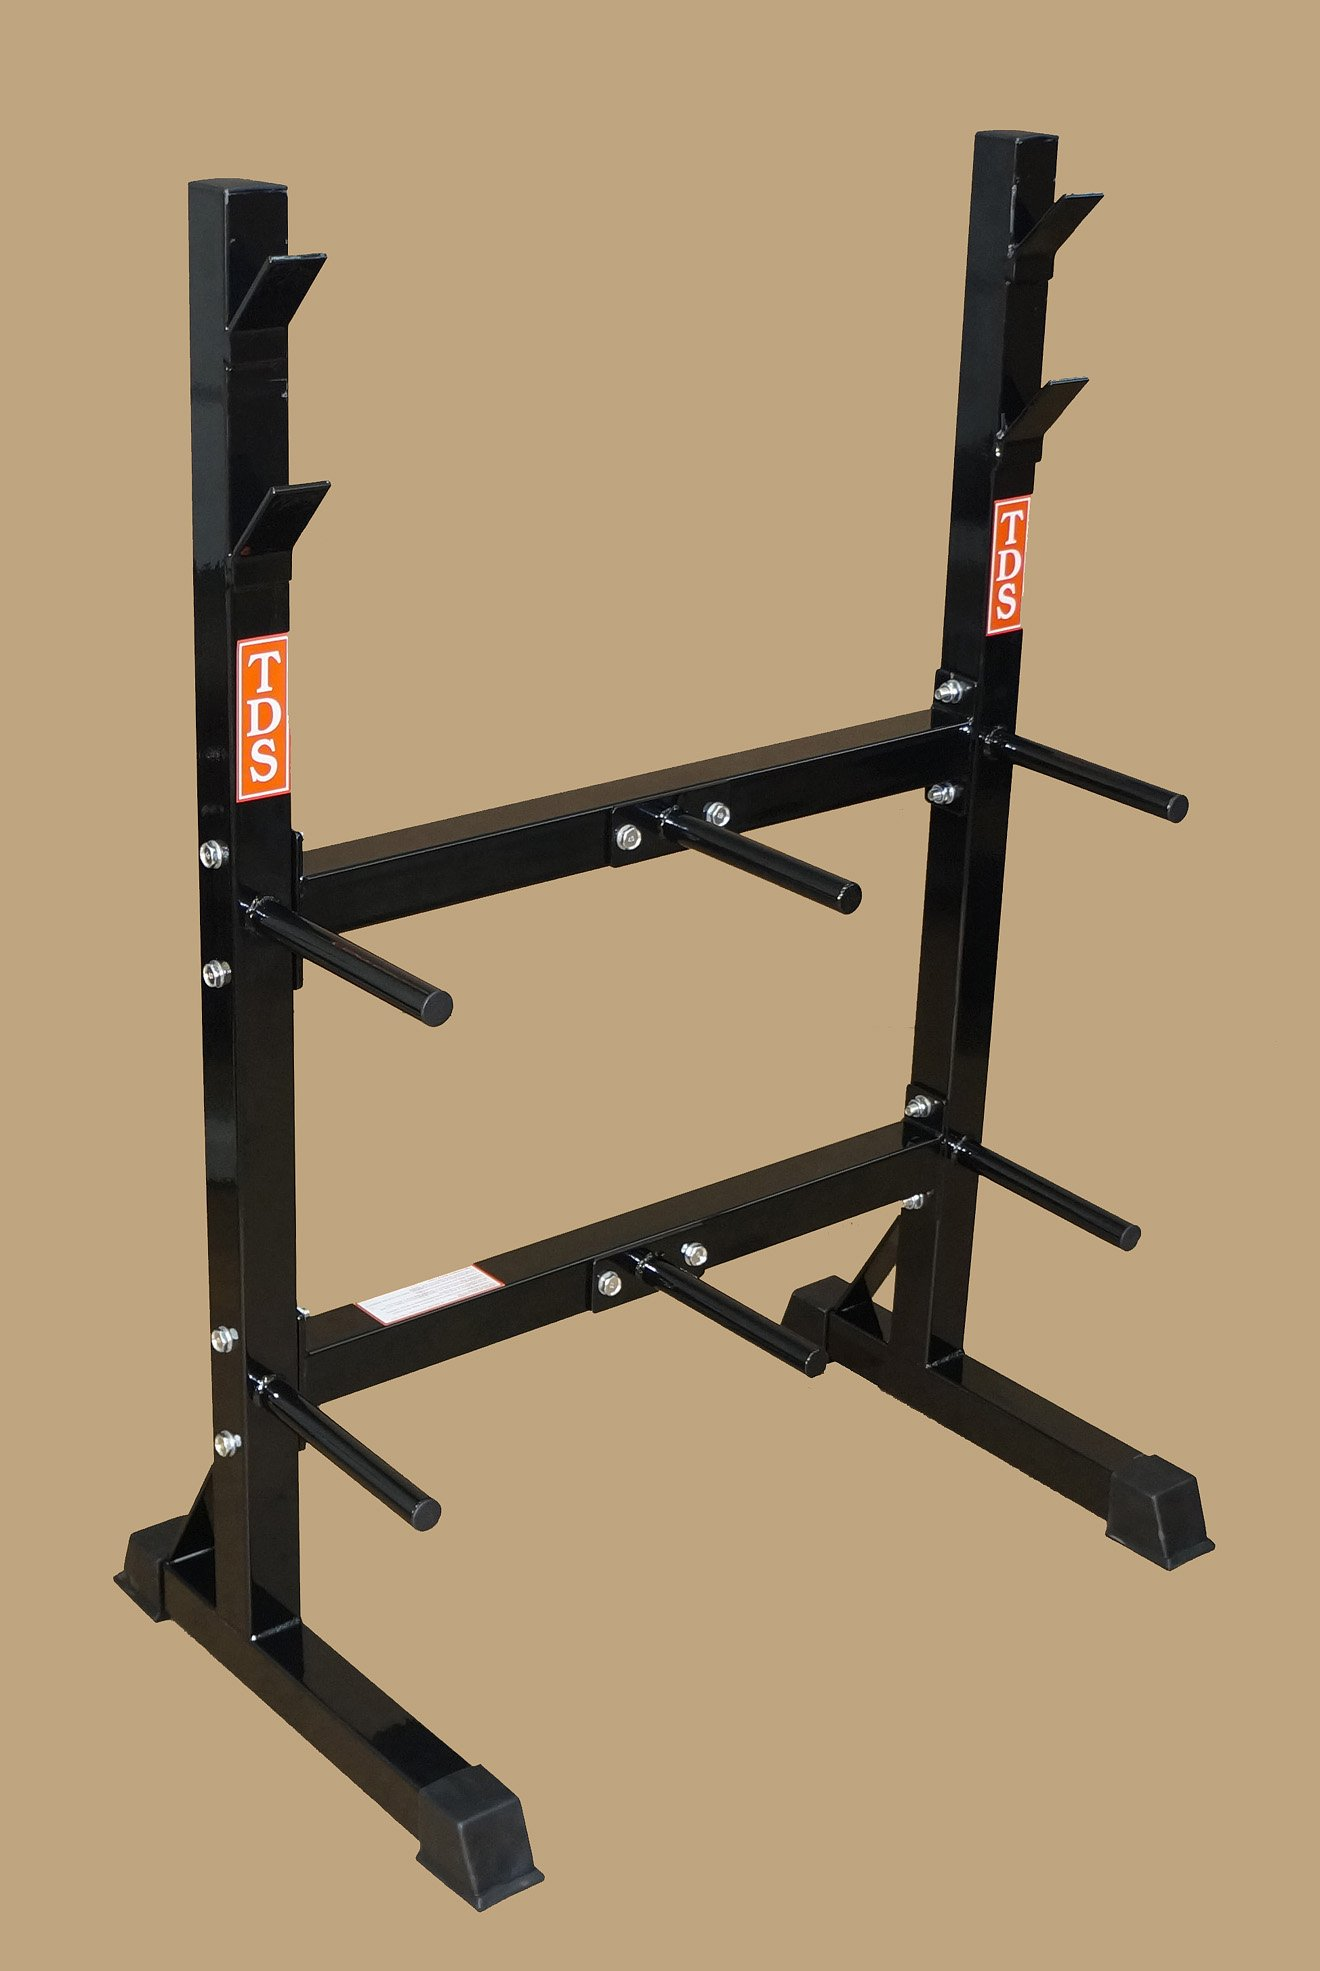 TDS-Front Loading Rack System for Standard Plates & Bars by TDS